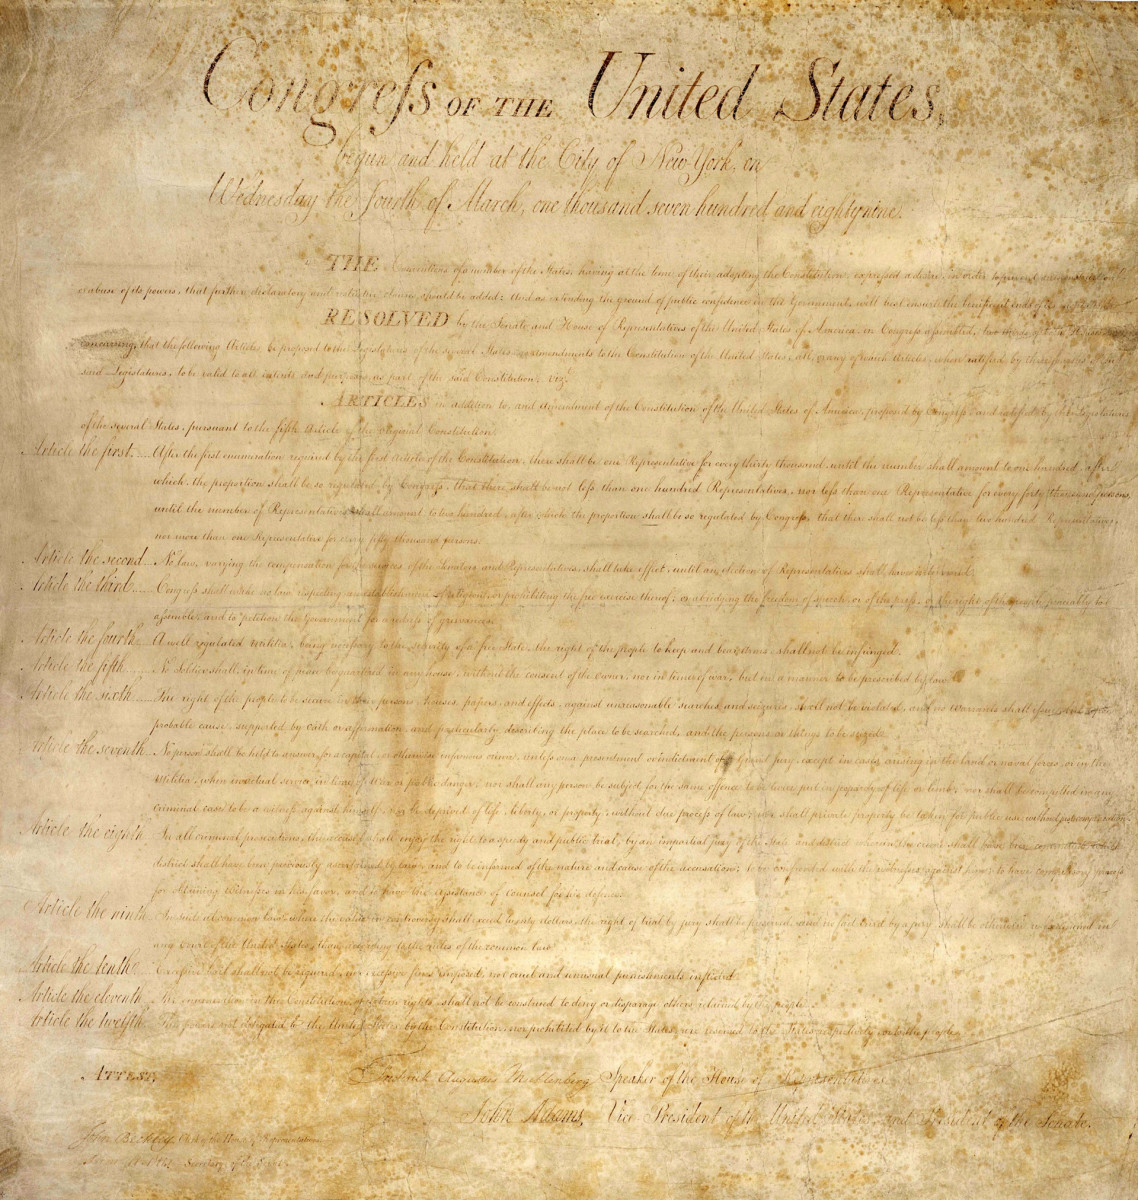 The U.S. Constitution Bill of Rights